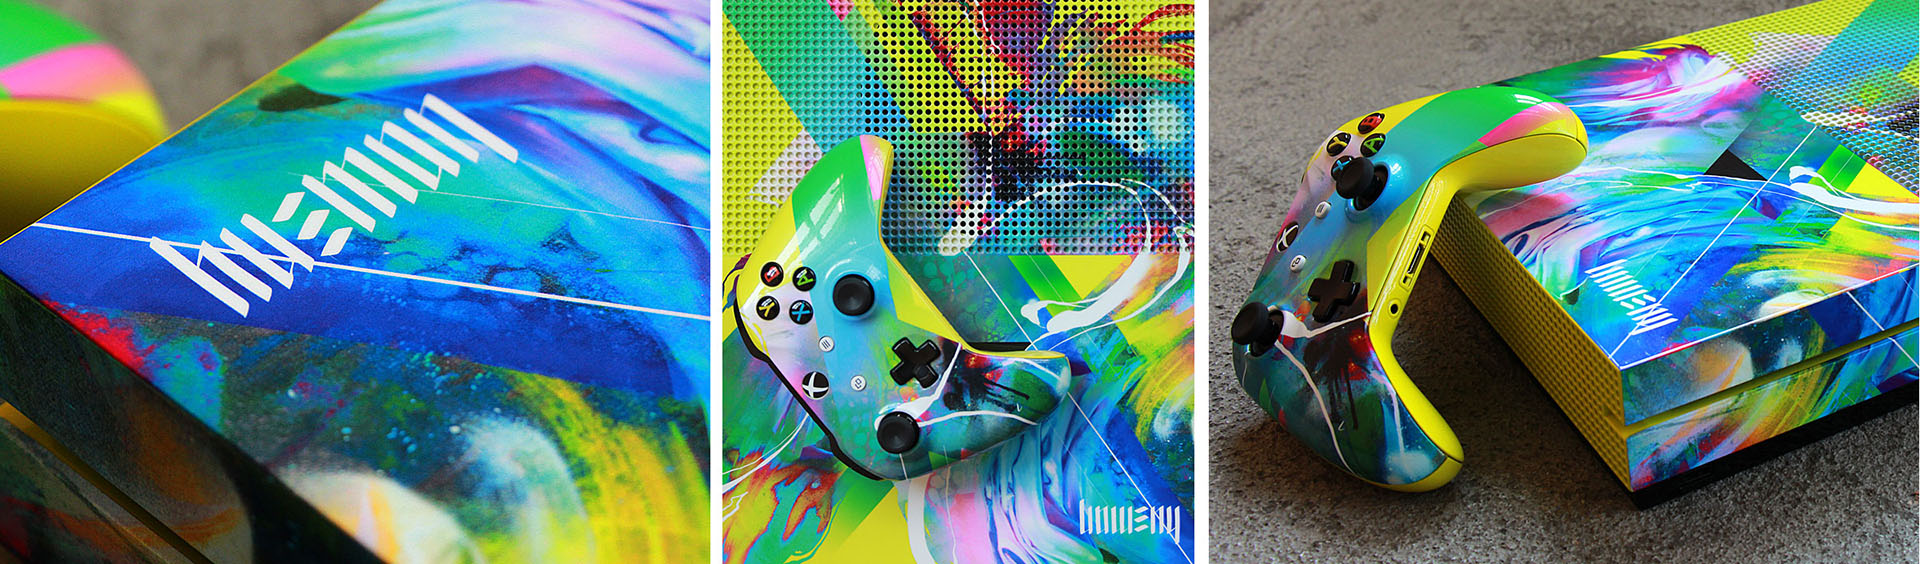 Microsoft Ultimate Game Face Xbox Tiled Graphic